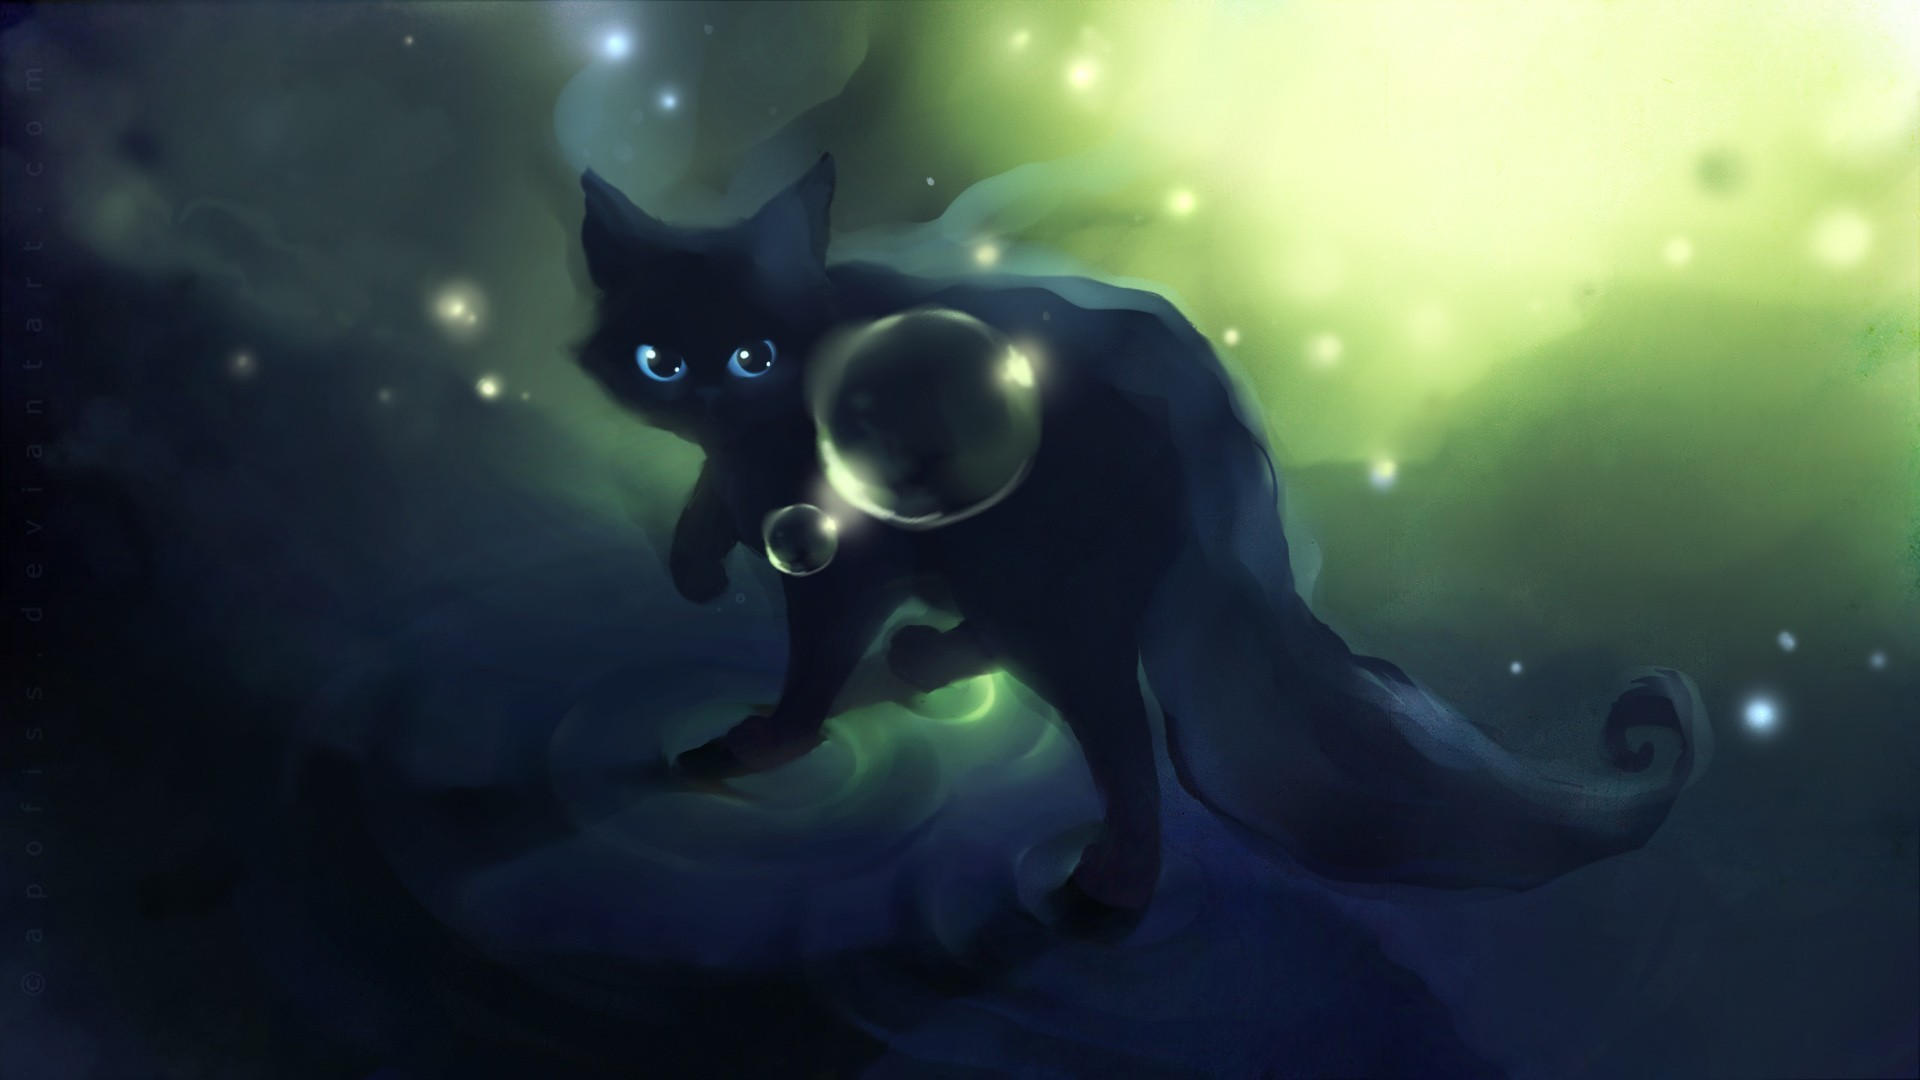 1920x1080 Heart-touching Cuties and Kittens : Speed Painting by Apofiss - Mysterious  demon cat , Amazing Little Kitty Illustrations Wallpaper 17